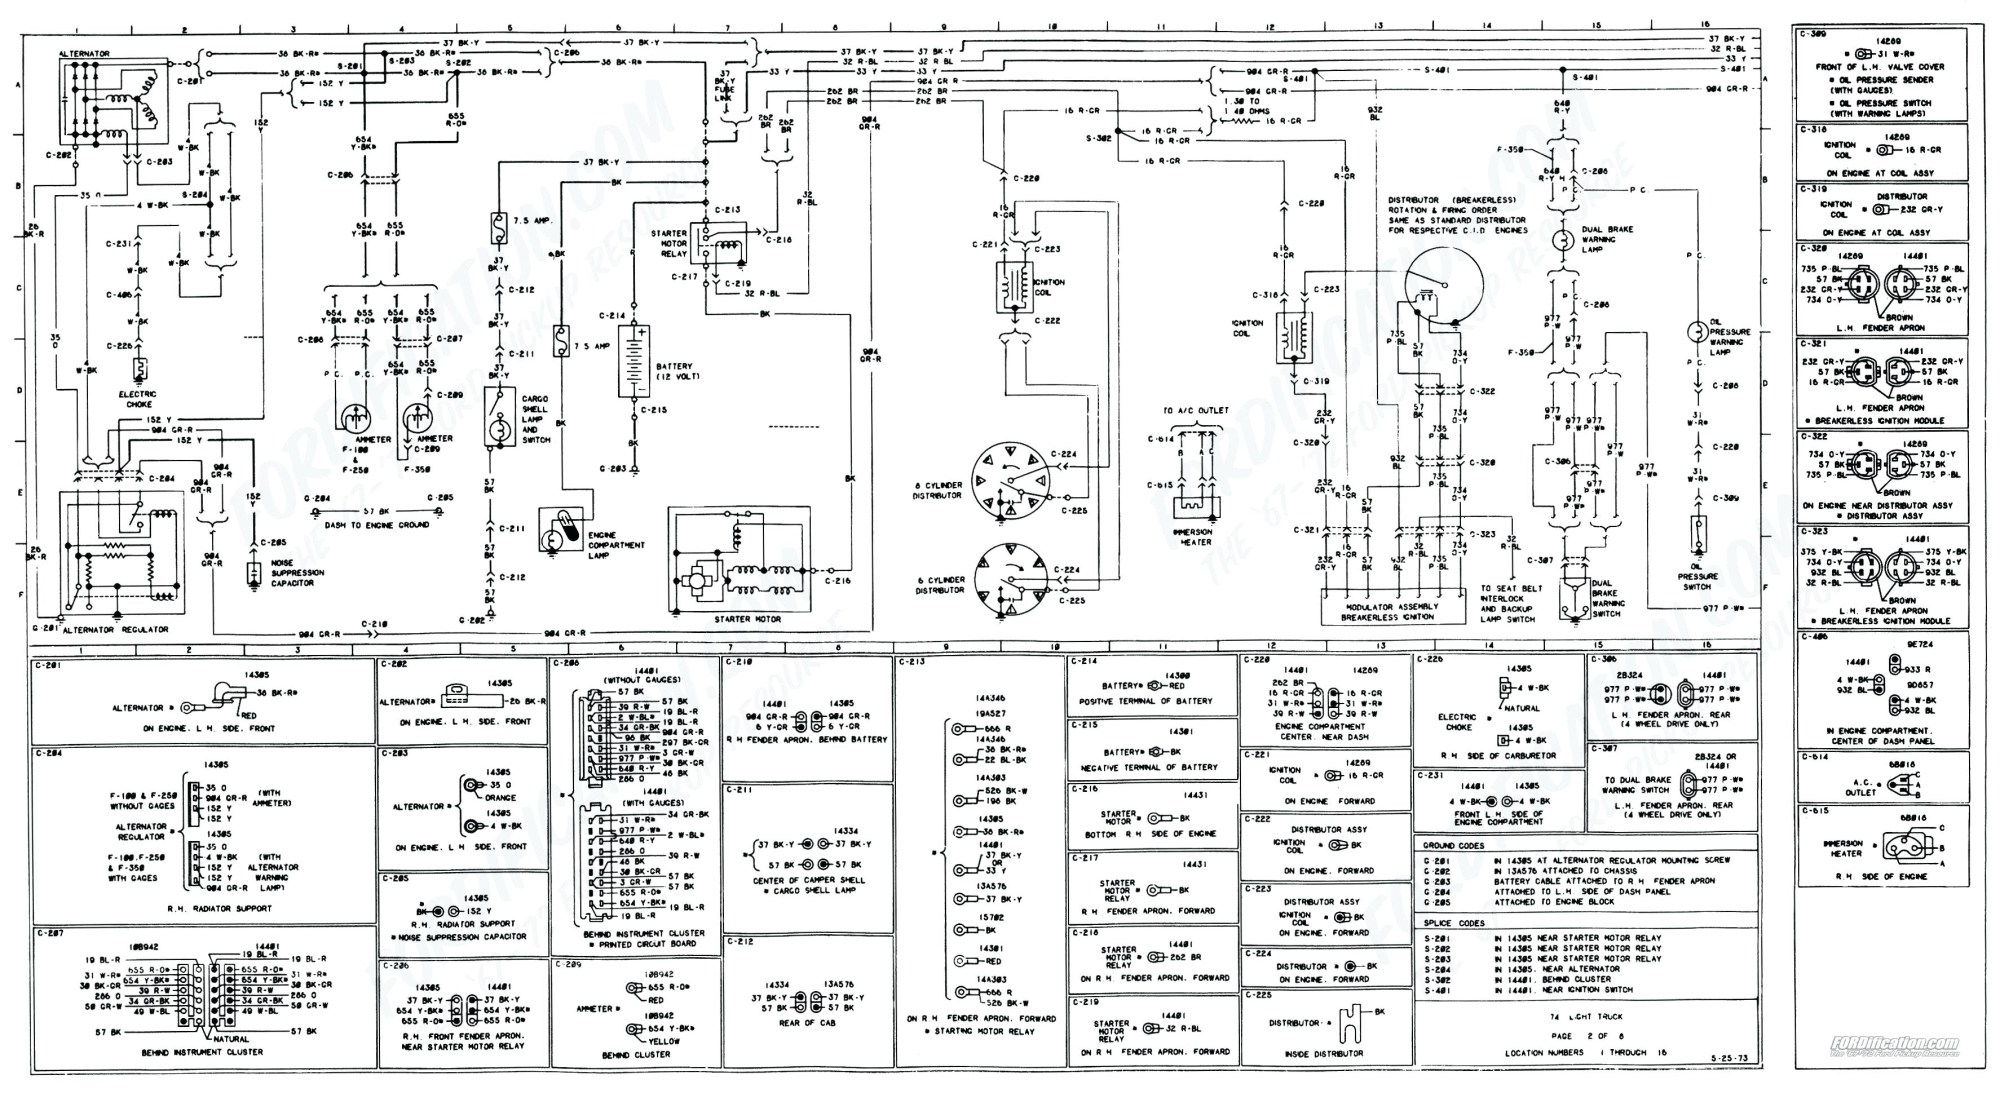 hight resolution of ford f650 wiring diagram gallery 2008 ford f450 fuse box diagram ford f650 fuse box diagram